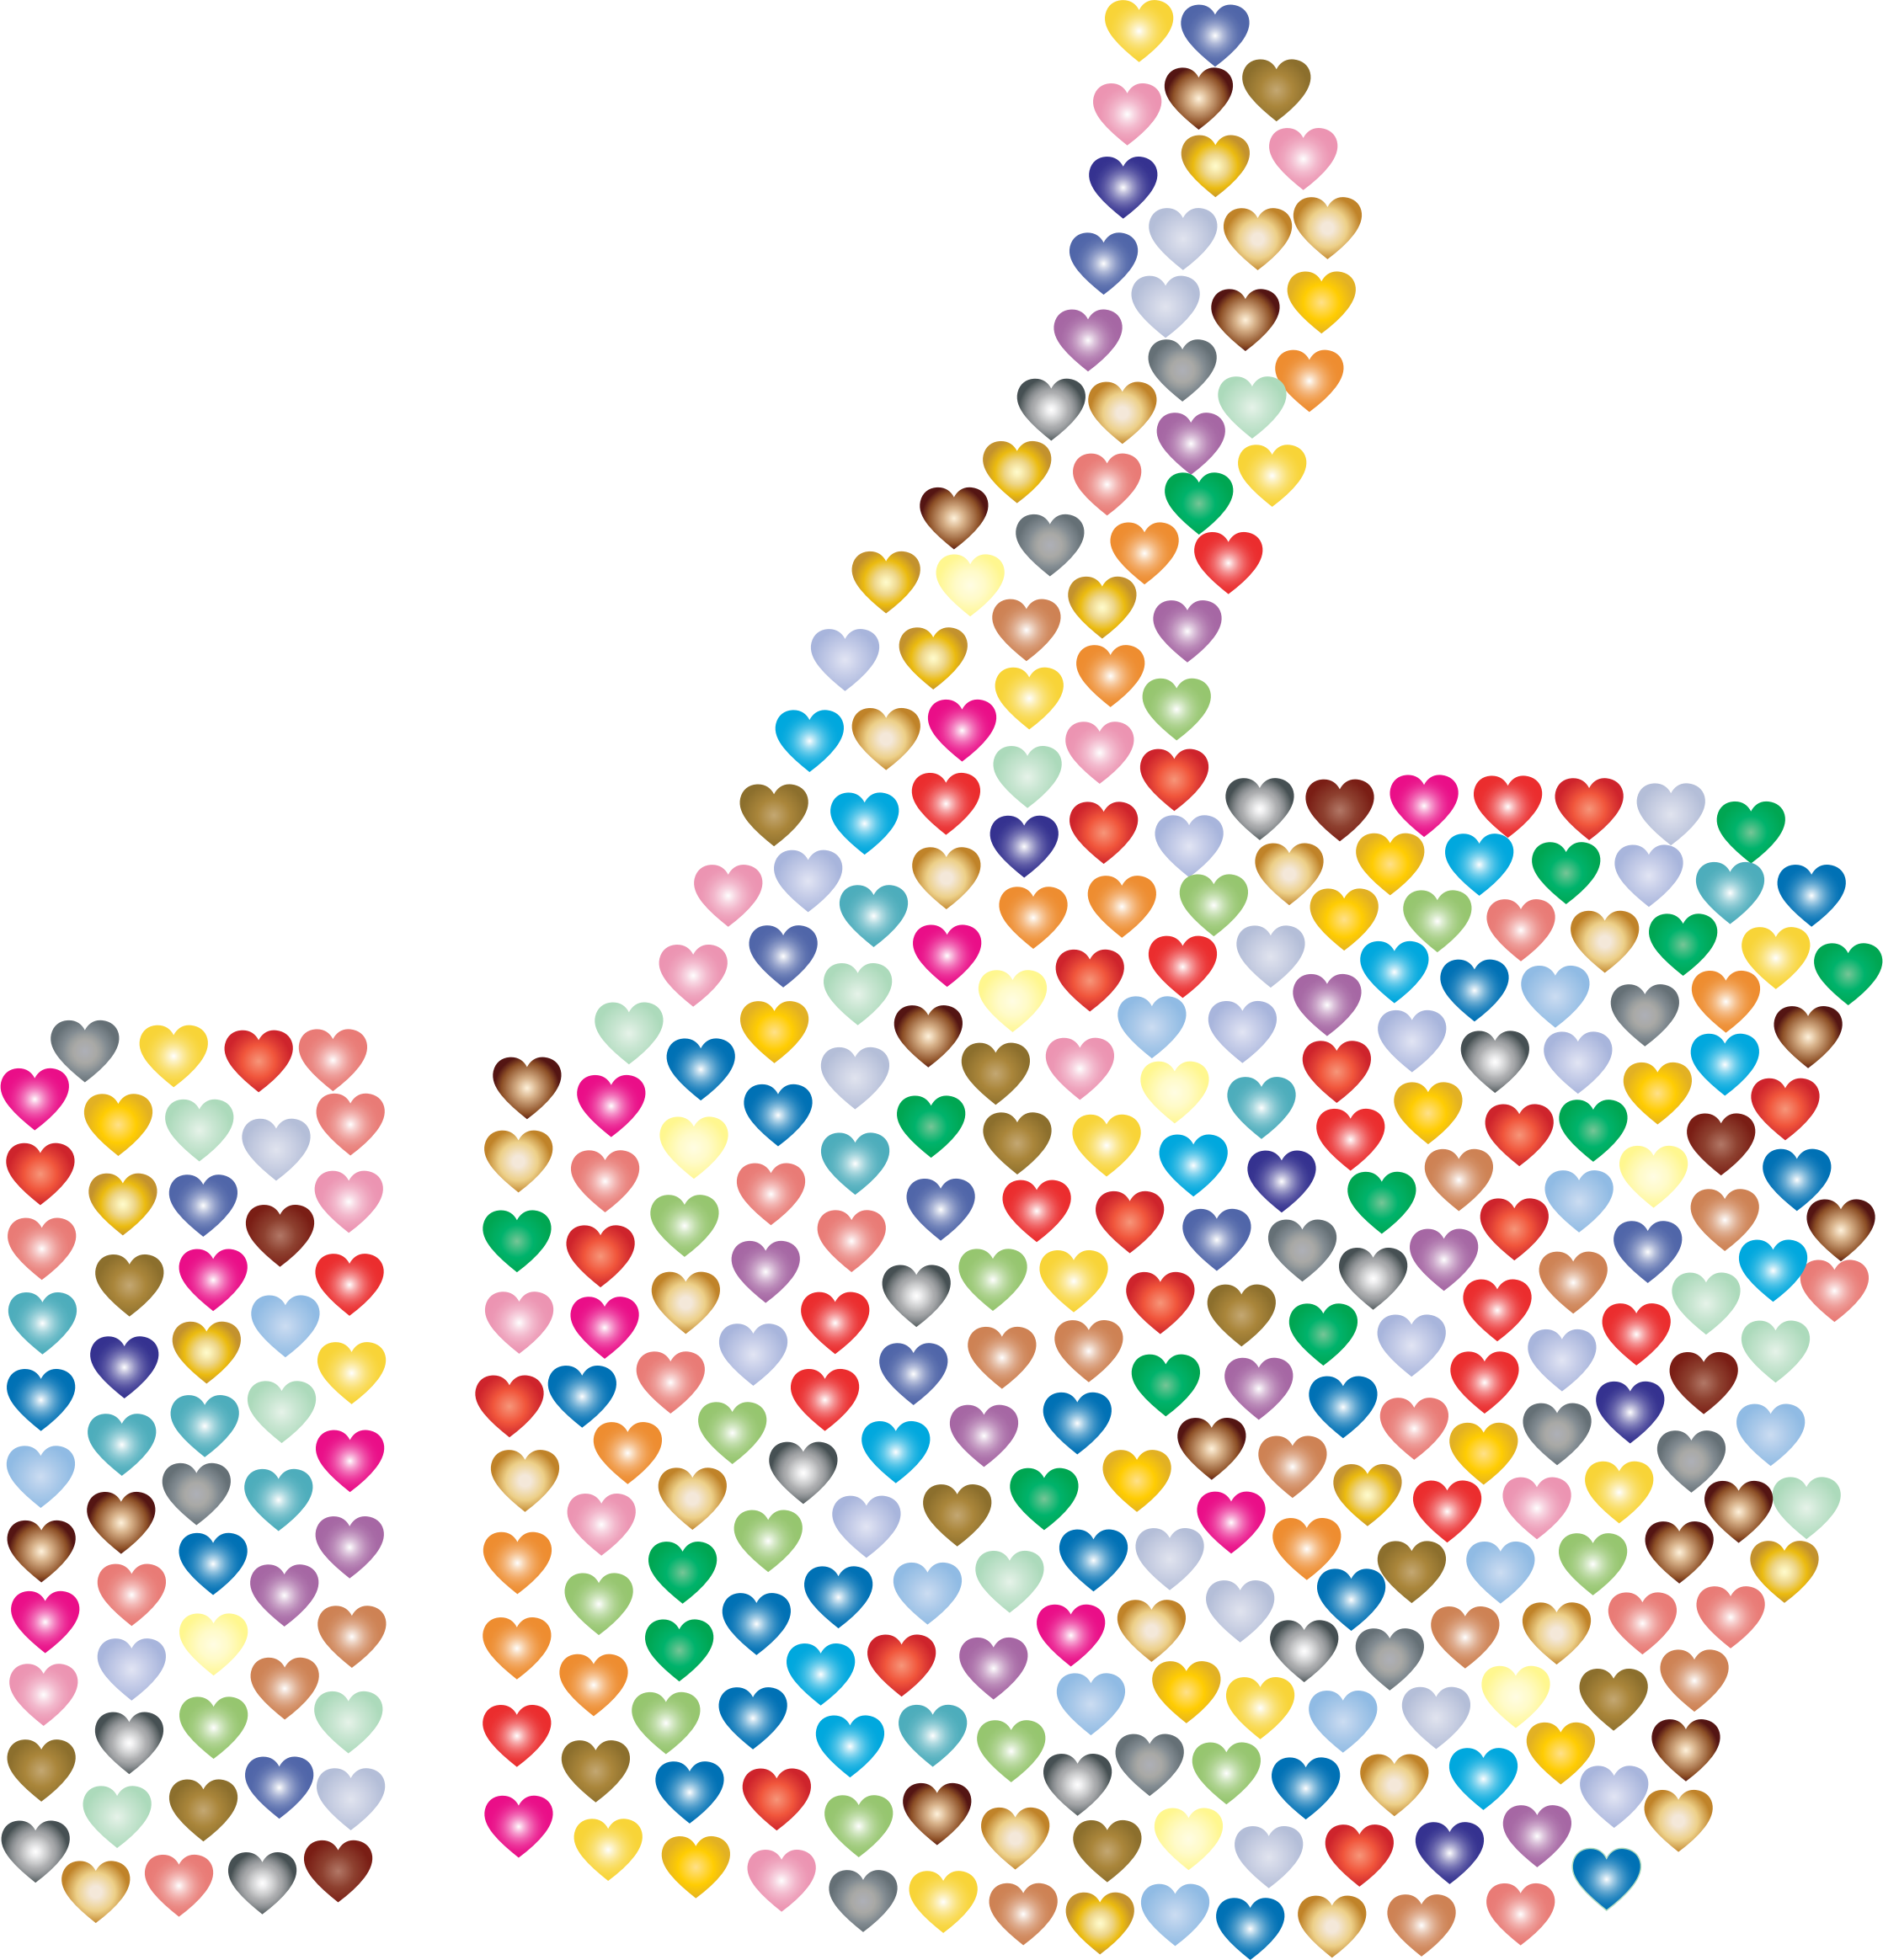 Prismatic Hearts Thumbs Up Silhouette 3 No Background by GDJ